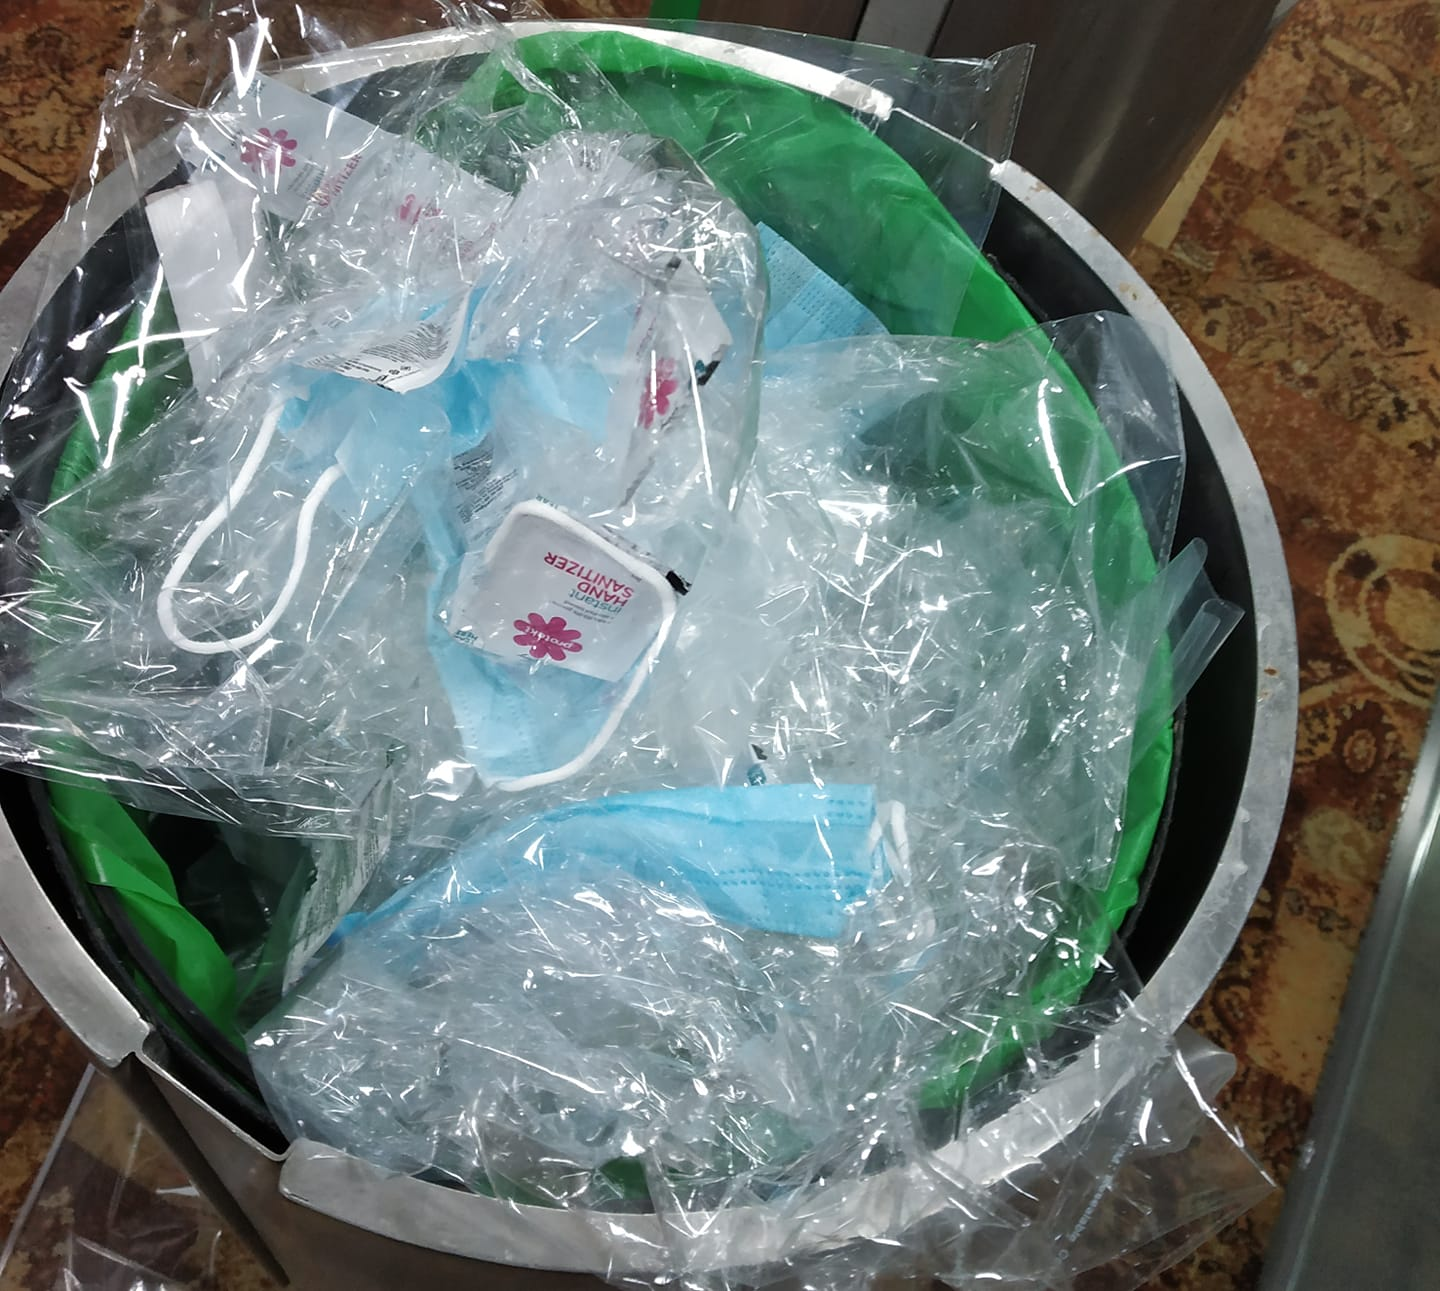 Masks and Sanitizers in a dustbin